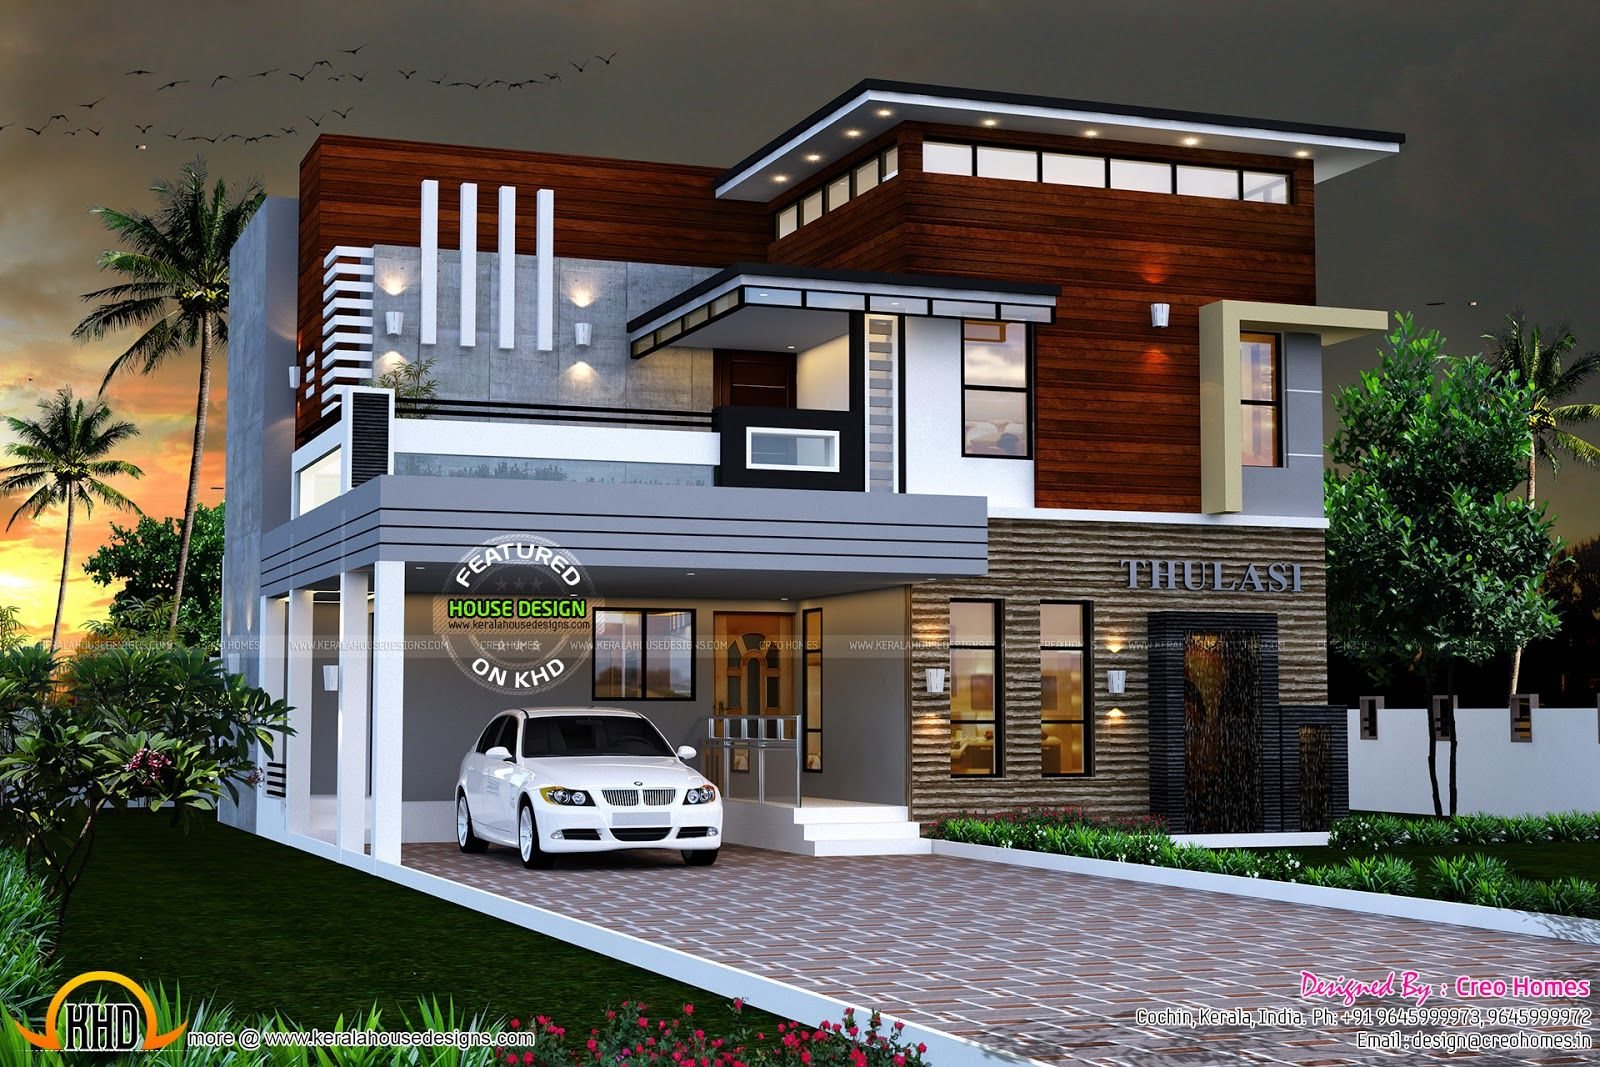 Eterior design modern small house architecture building for Best home designs 2015